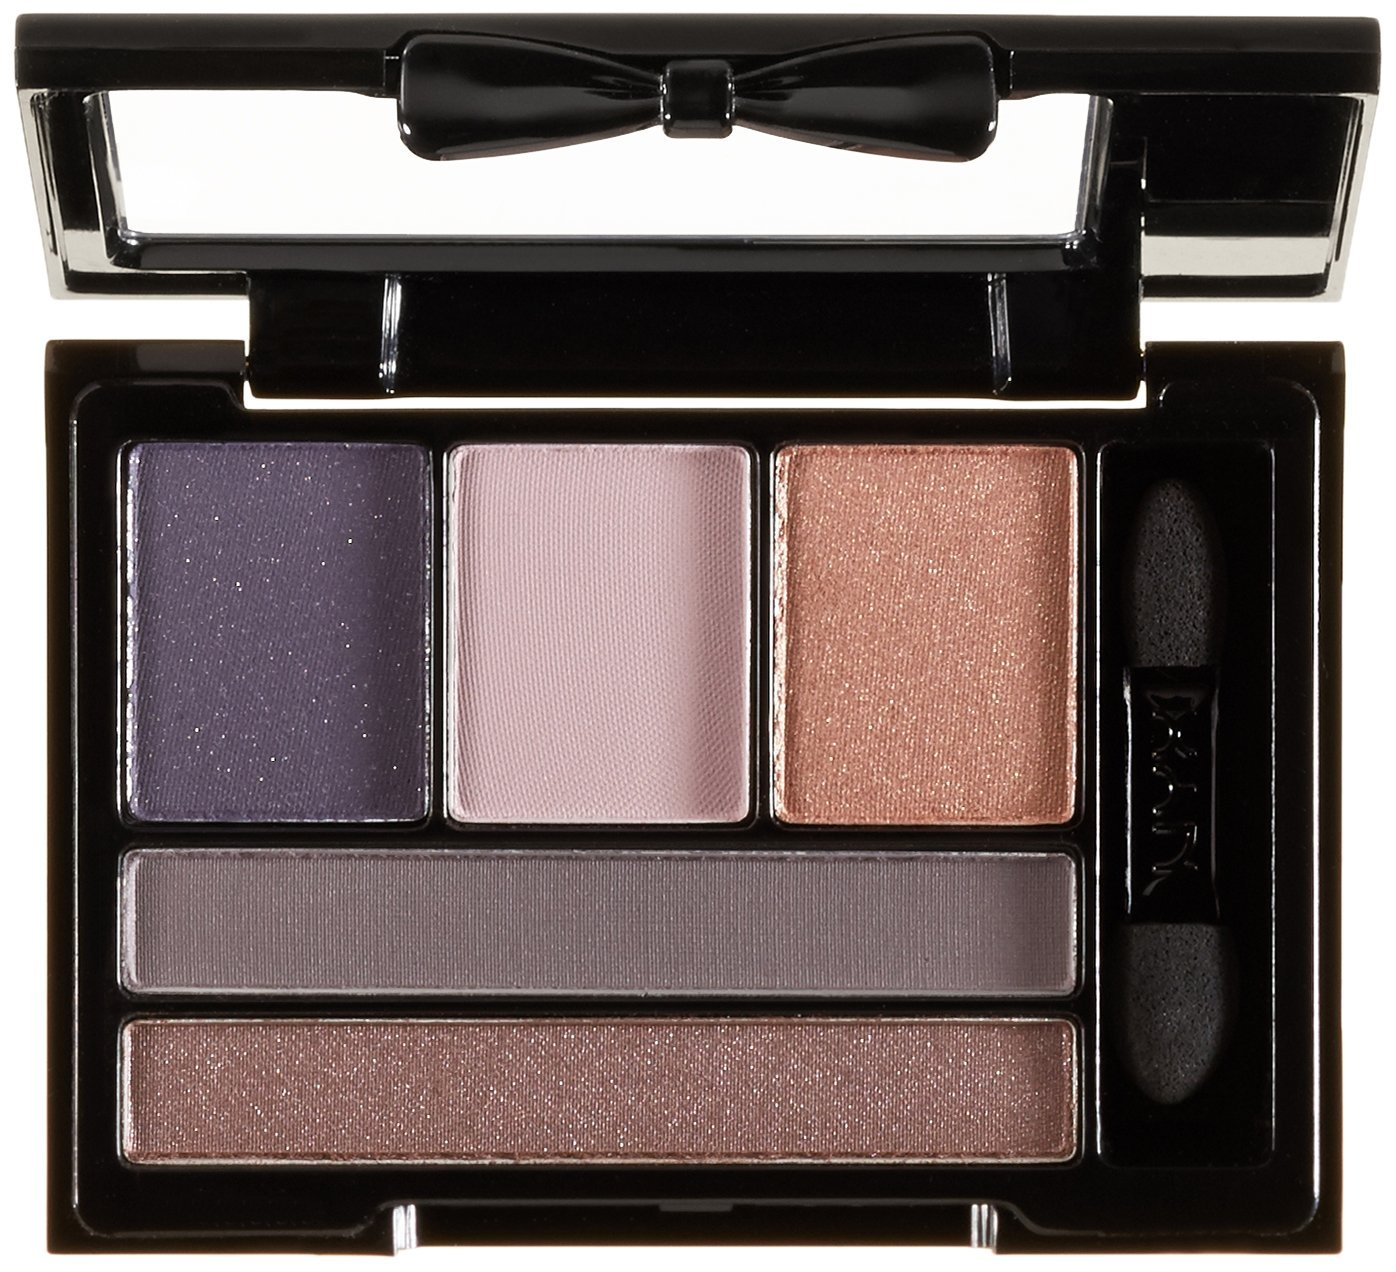 nyx love in florence 5 colour eyeshadow palette. Black Bedroom Furniture Sets. Home Design Ideas